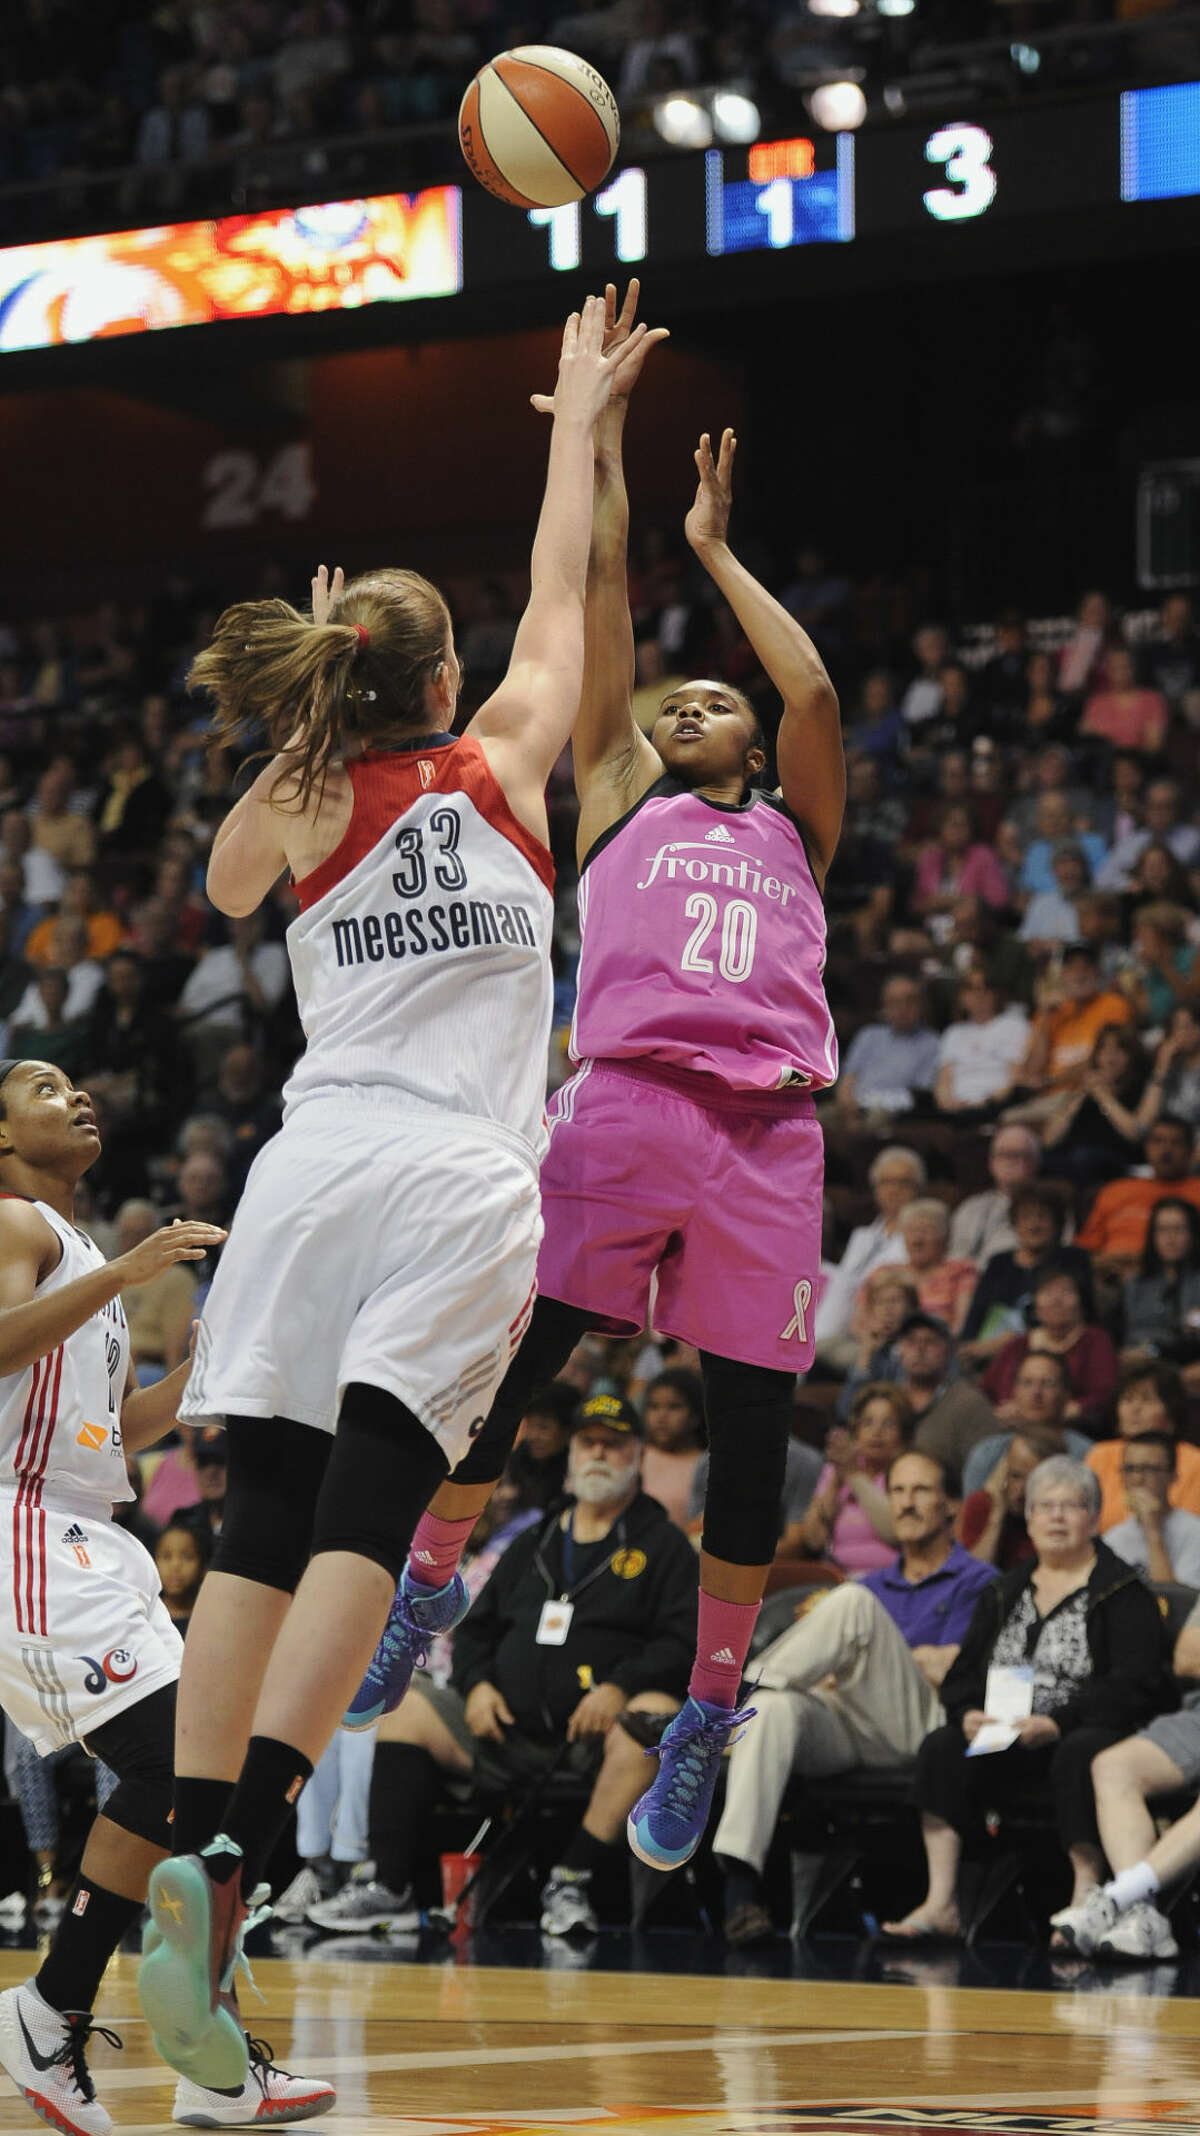 Connecticut Sun's Alex Bentley, right, shoots over Washington Mystics' Emma Meesseman during the first half of a WNBA basketball game, Friday, Aug. 7, 2015, in Uncasville, Conn. (AP Photo/Jessica Hill)